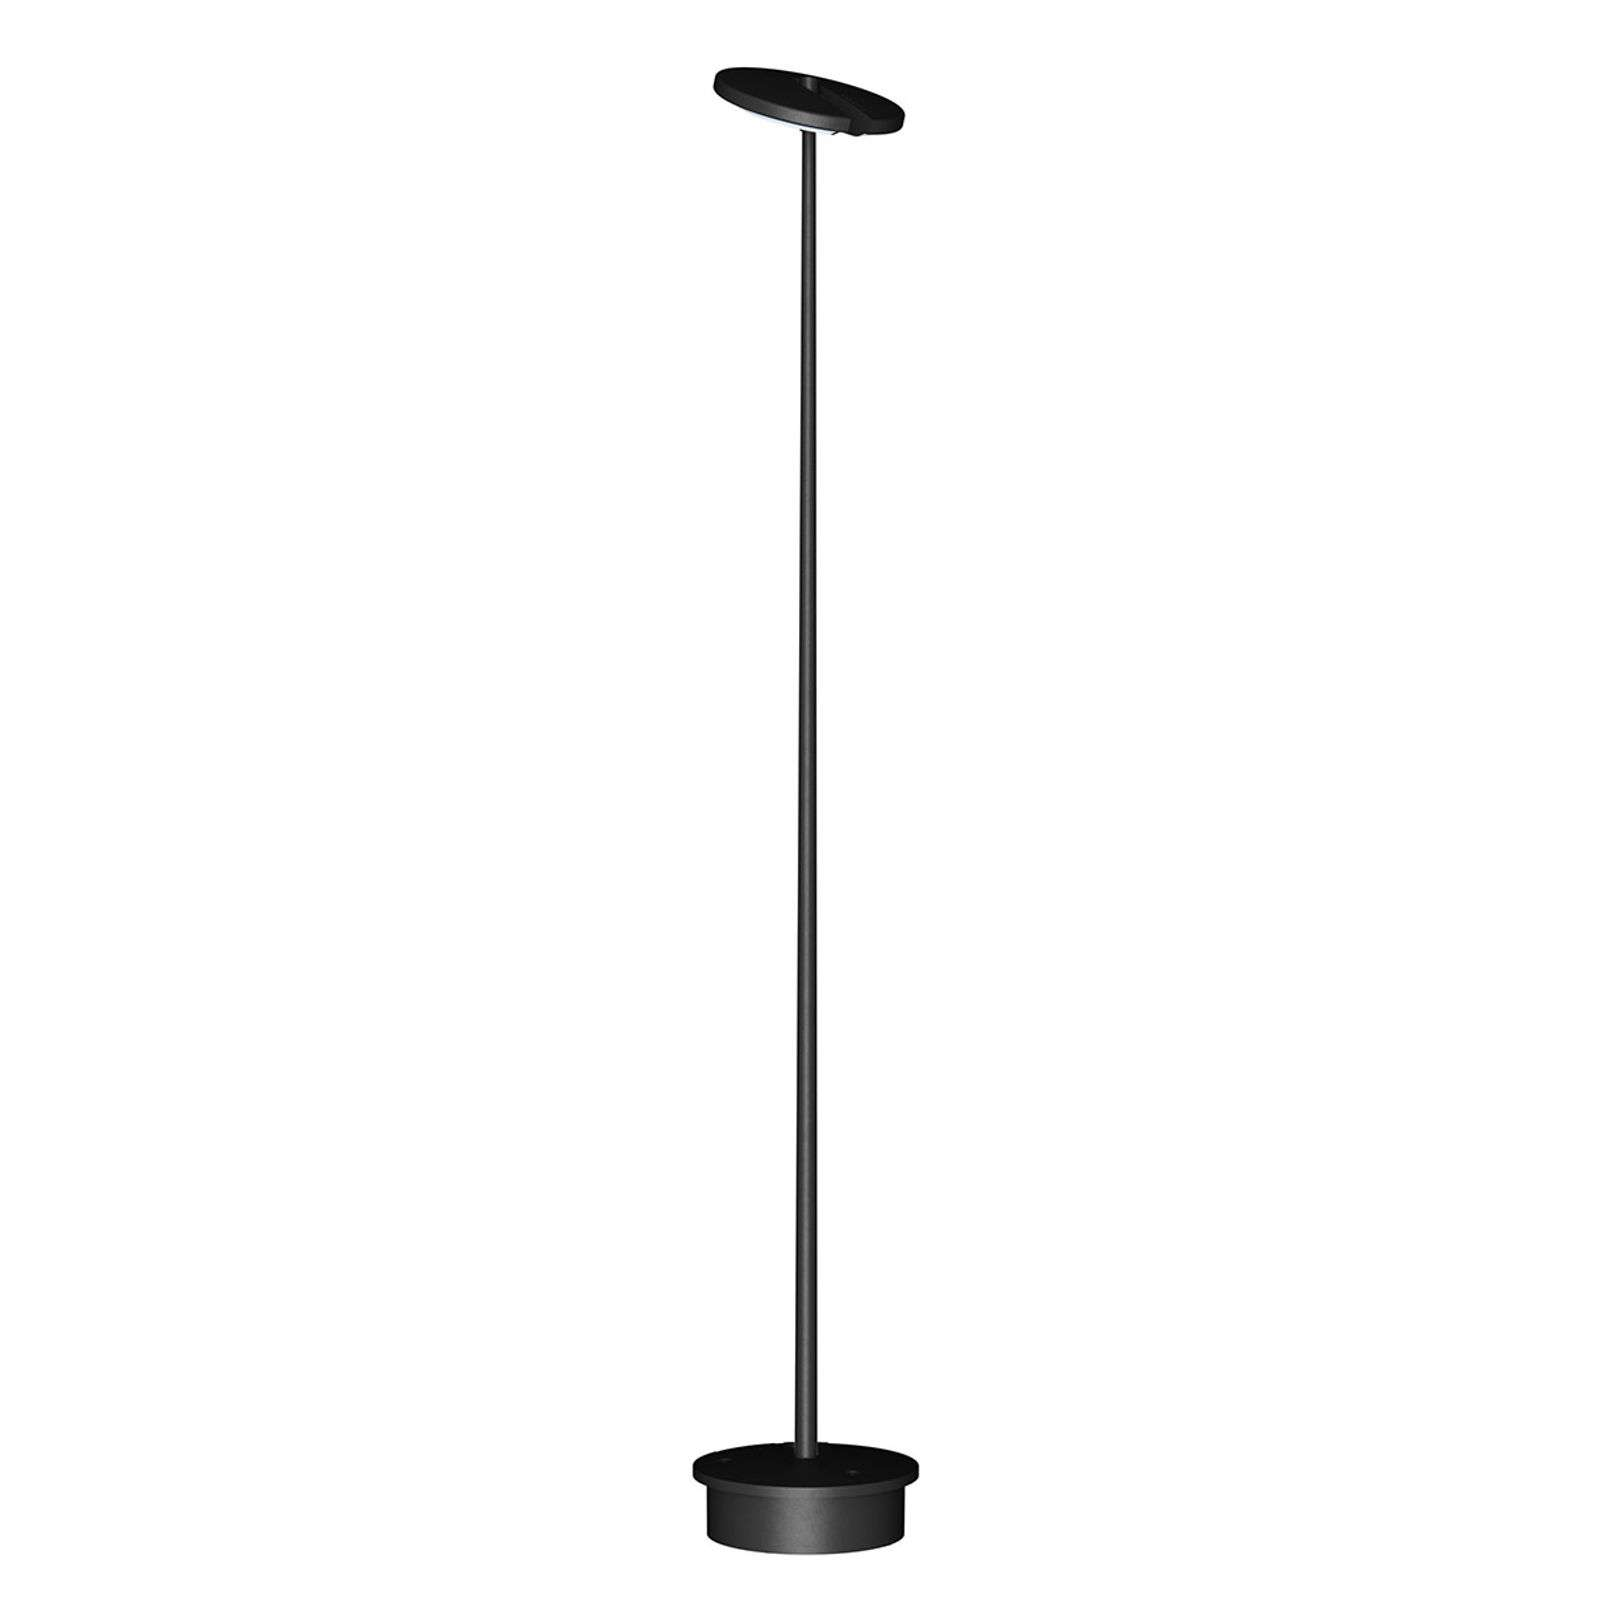 Slanke LED-tuinpadverlichting Invisible IP54